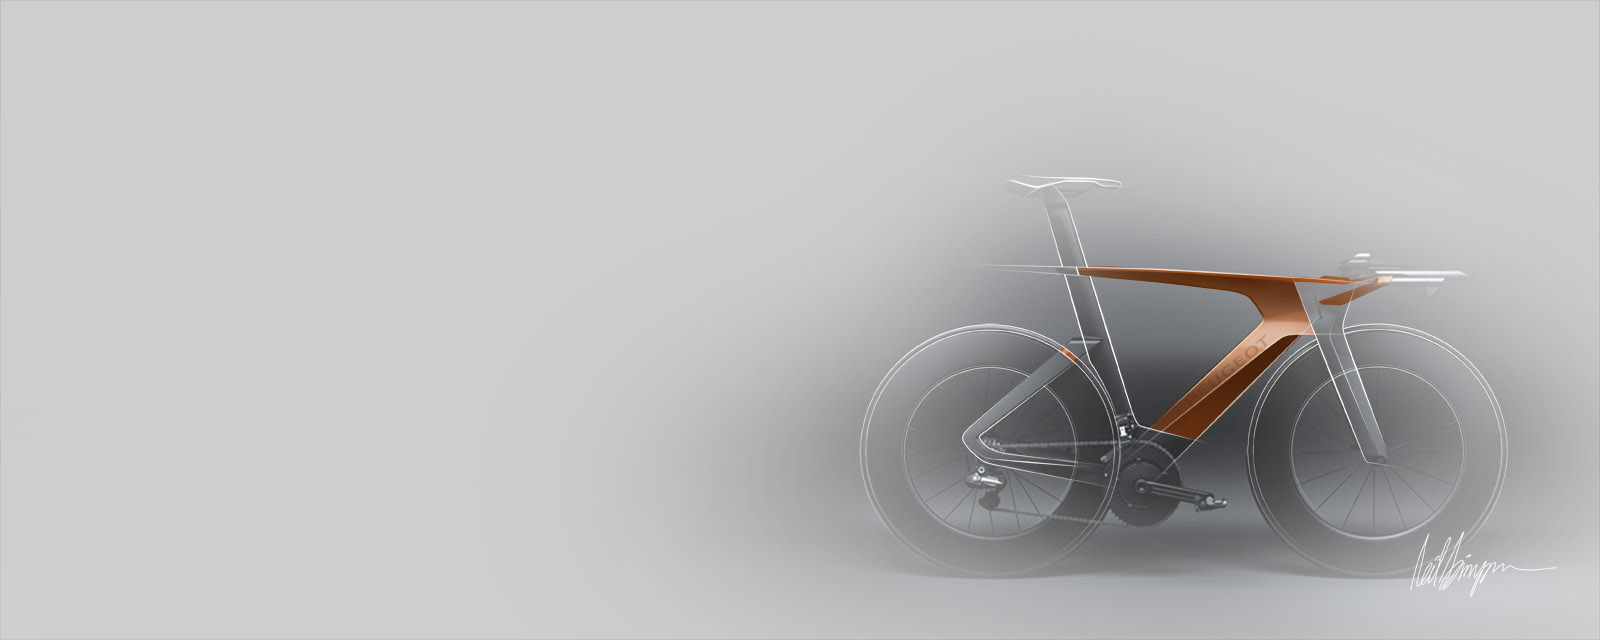 Onyx Projects - DESIGNER - Peugeot ONYX Superbike Concept